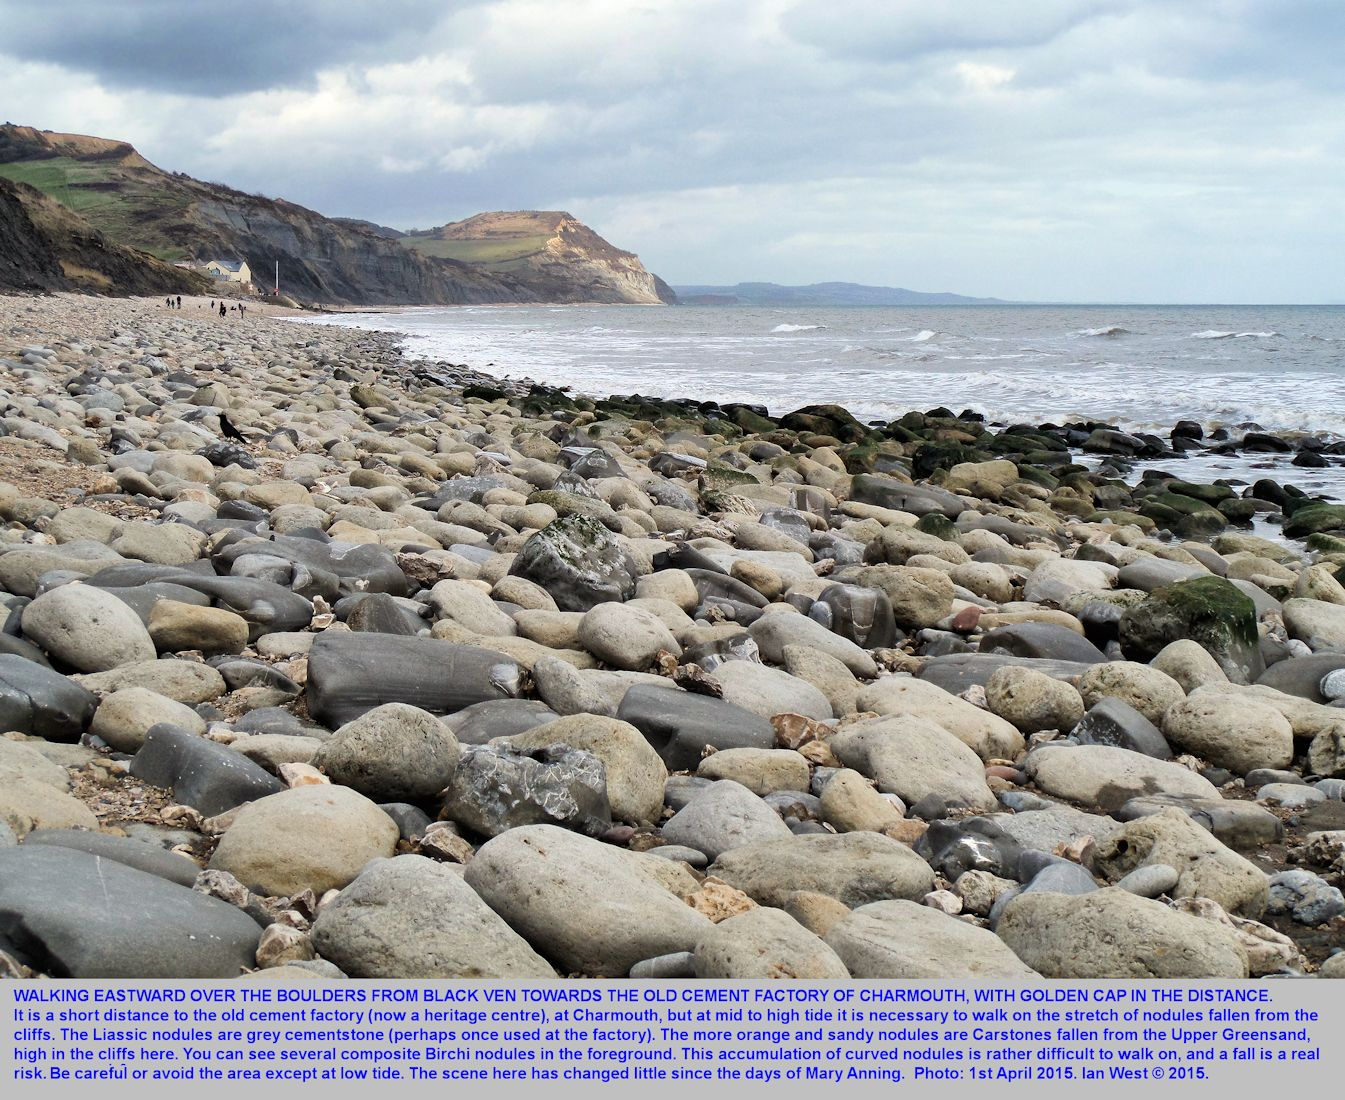 The beach of boulders, at the eastern part of Black Ven, at the Bar Ledge at mid tide, just west of Charmouth, Dorset